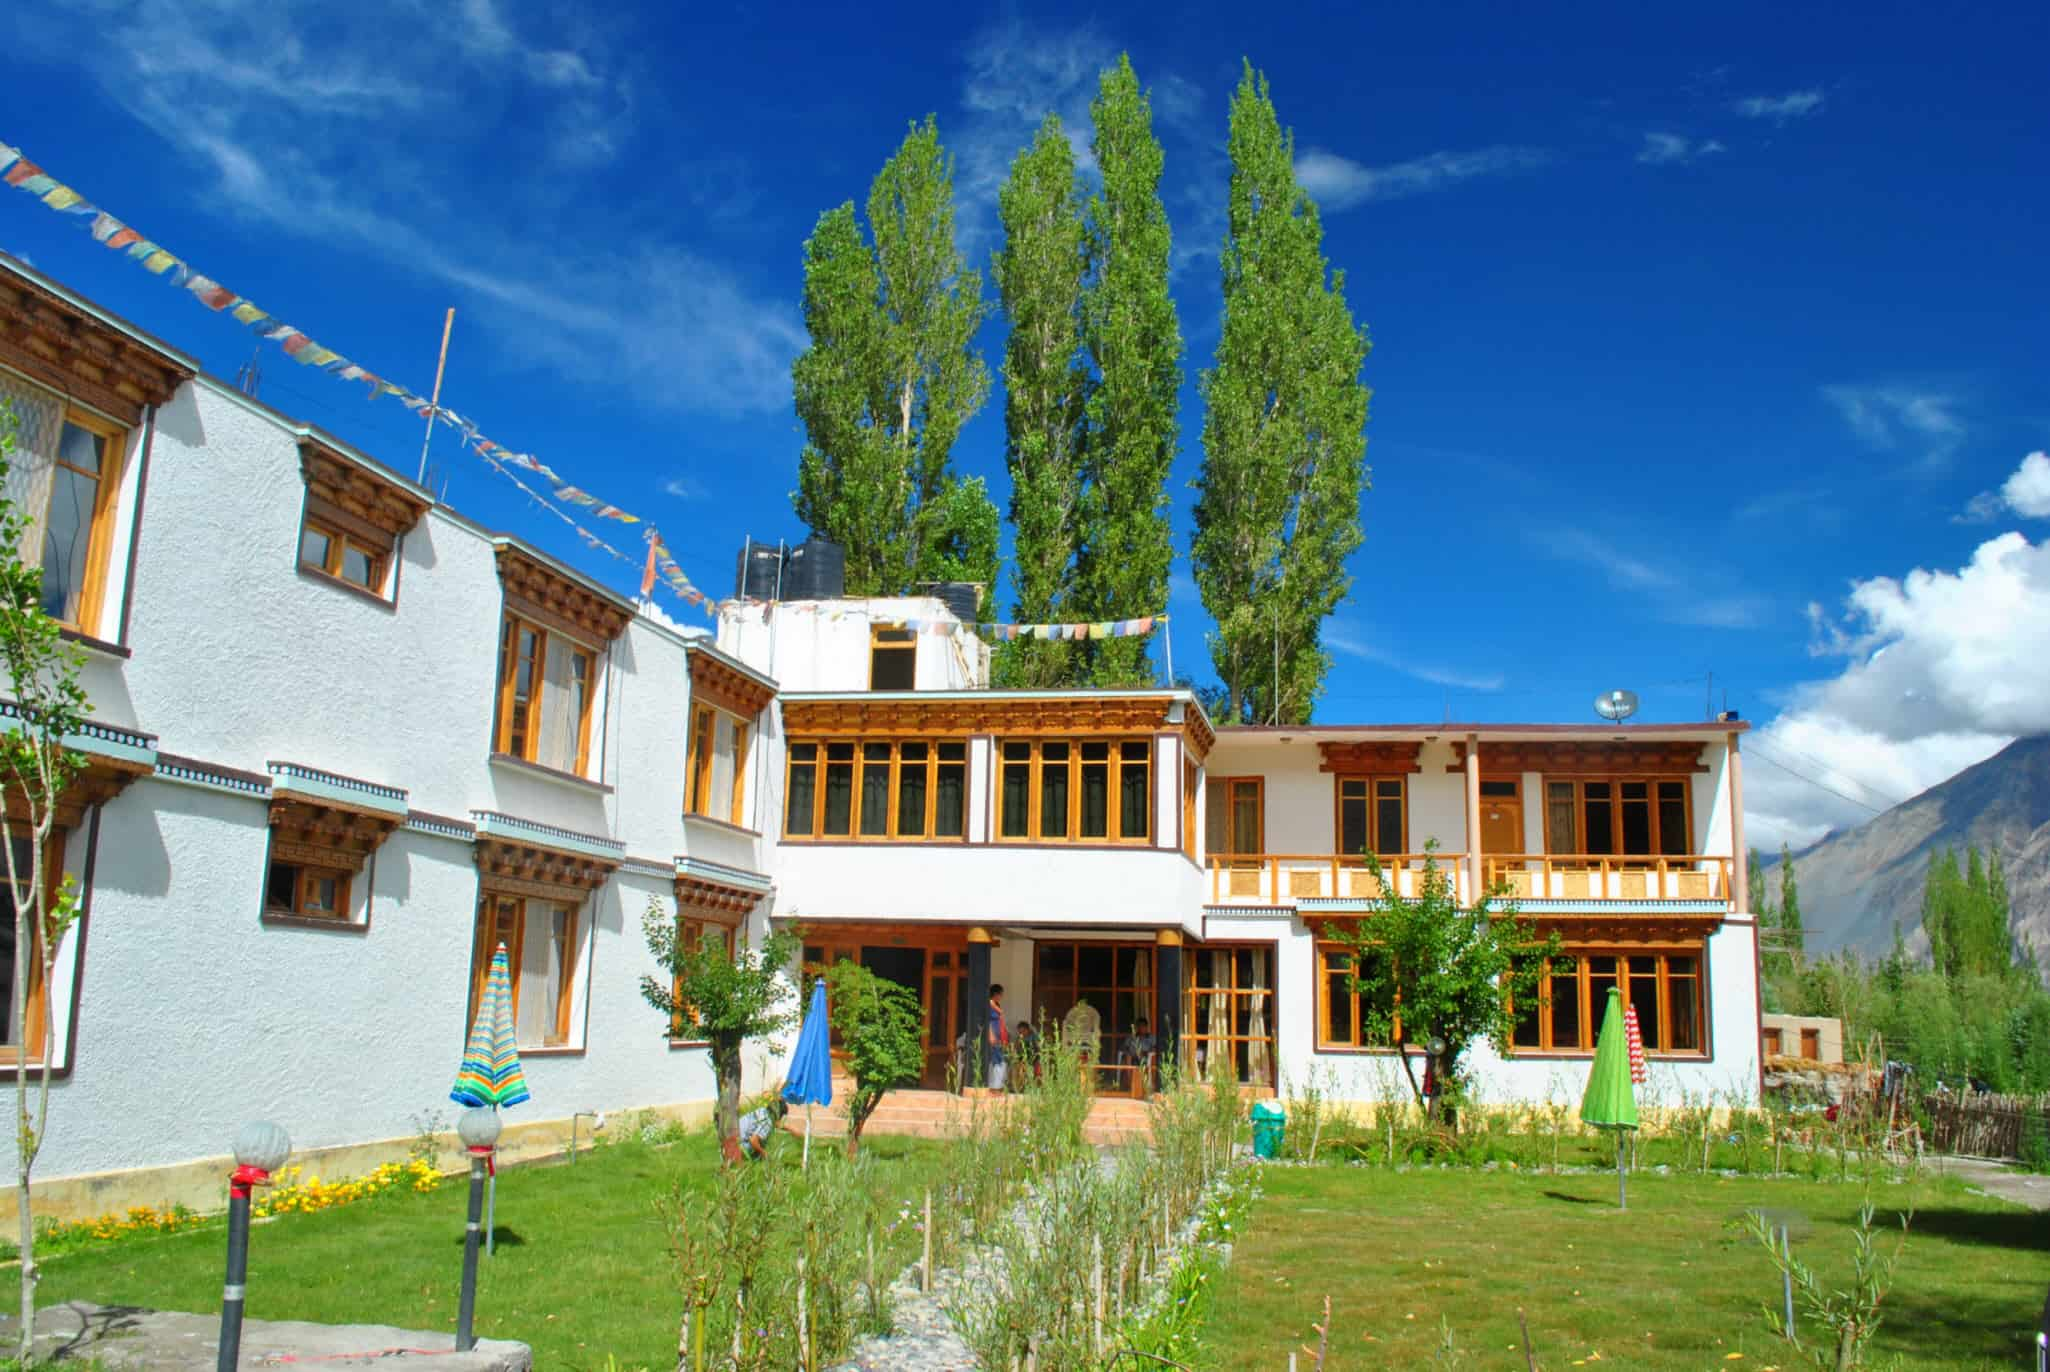 Beautiful place to stay in Nubra Valley